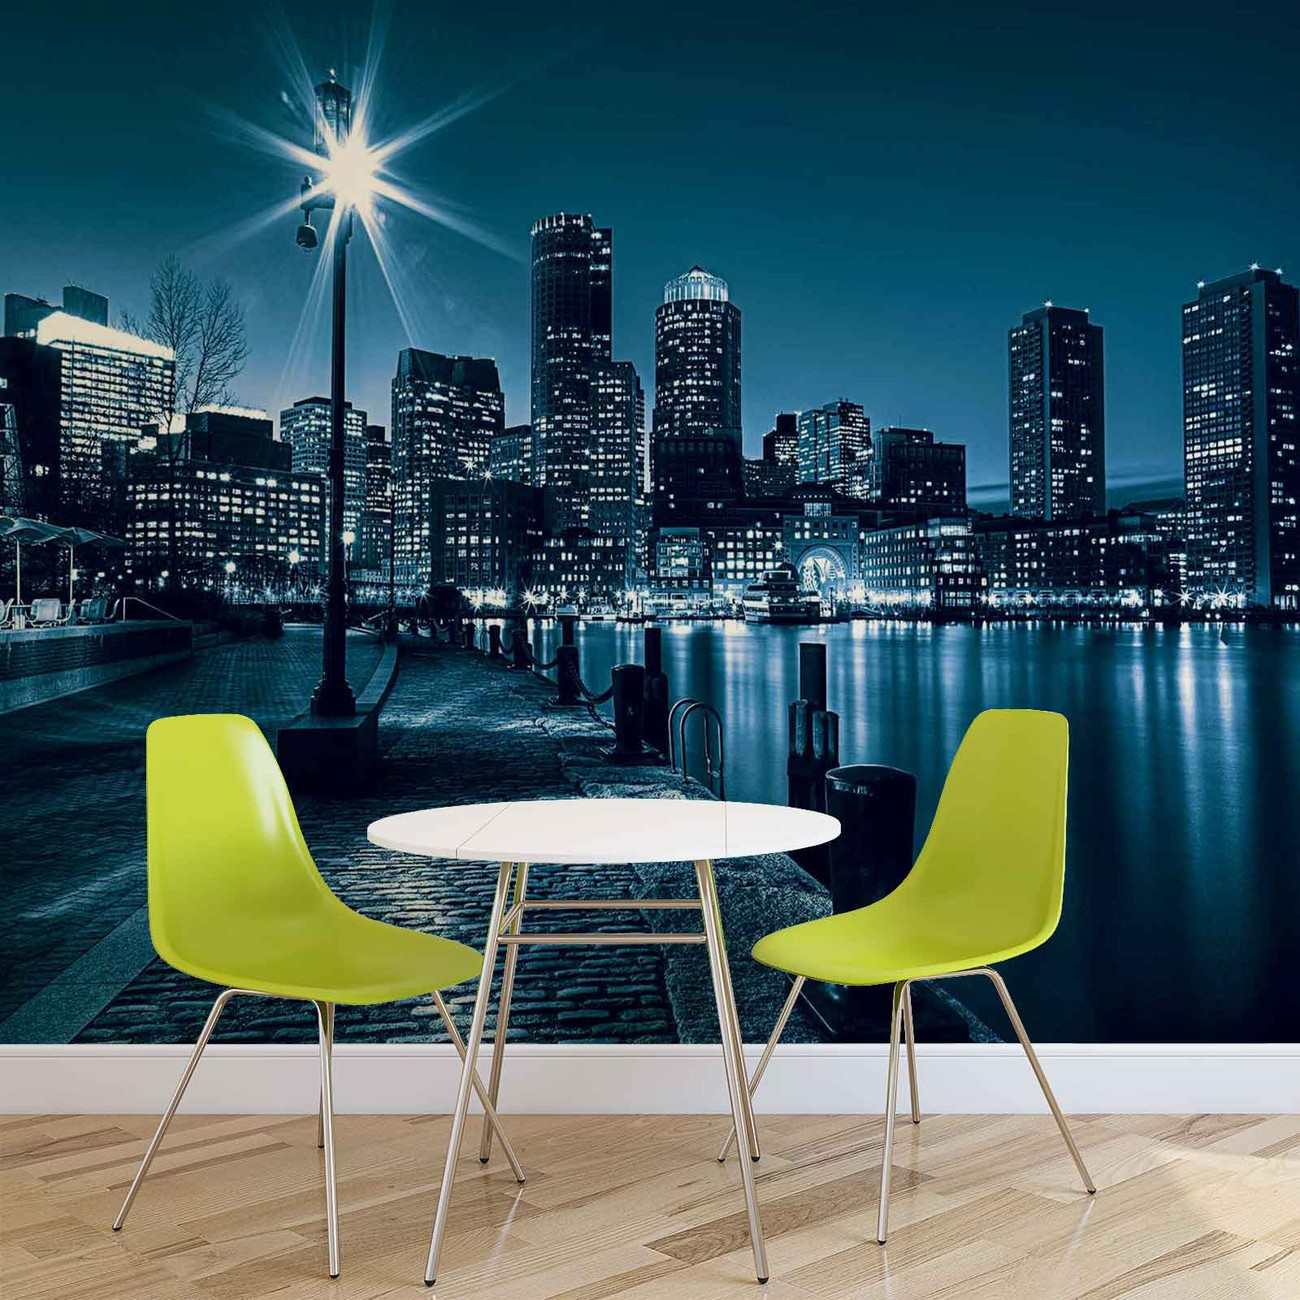 City boston skyline wall paper mural buy at europosters for Cityscape wall mural